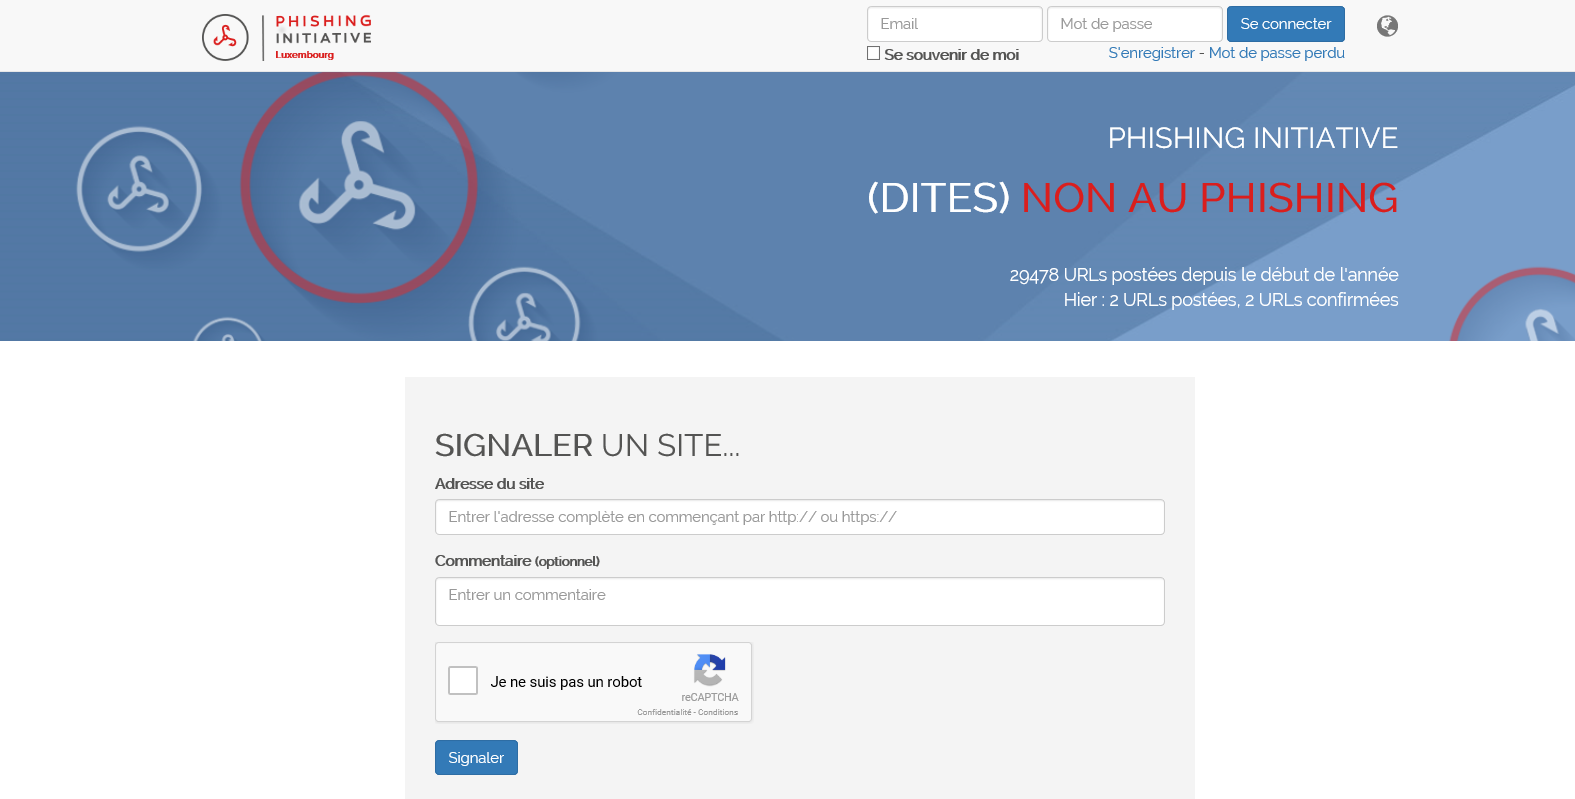 Le site anti-phishing du Luxembourg